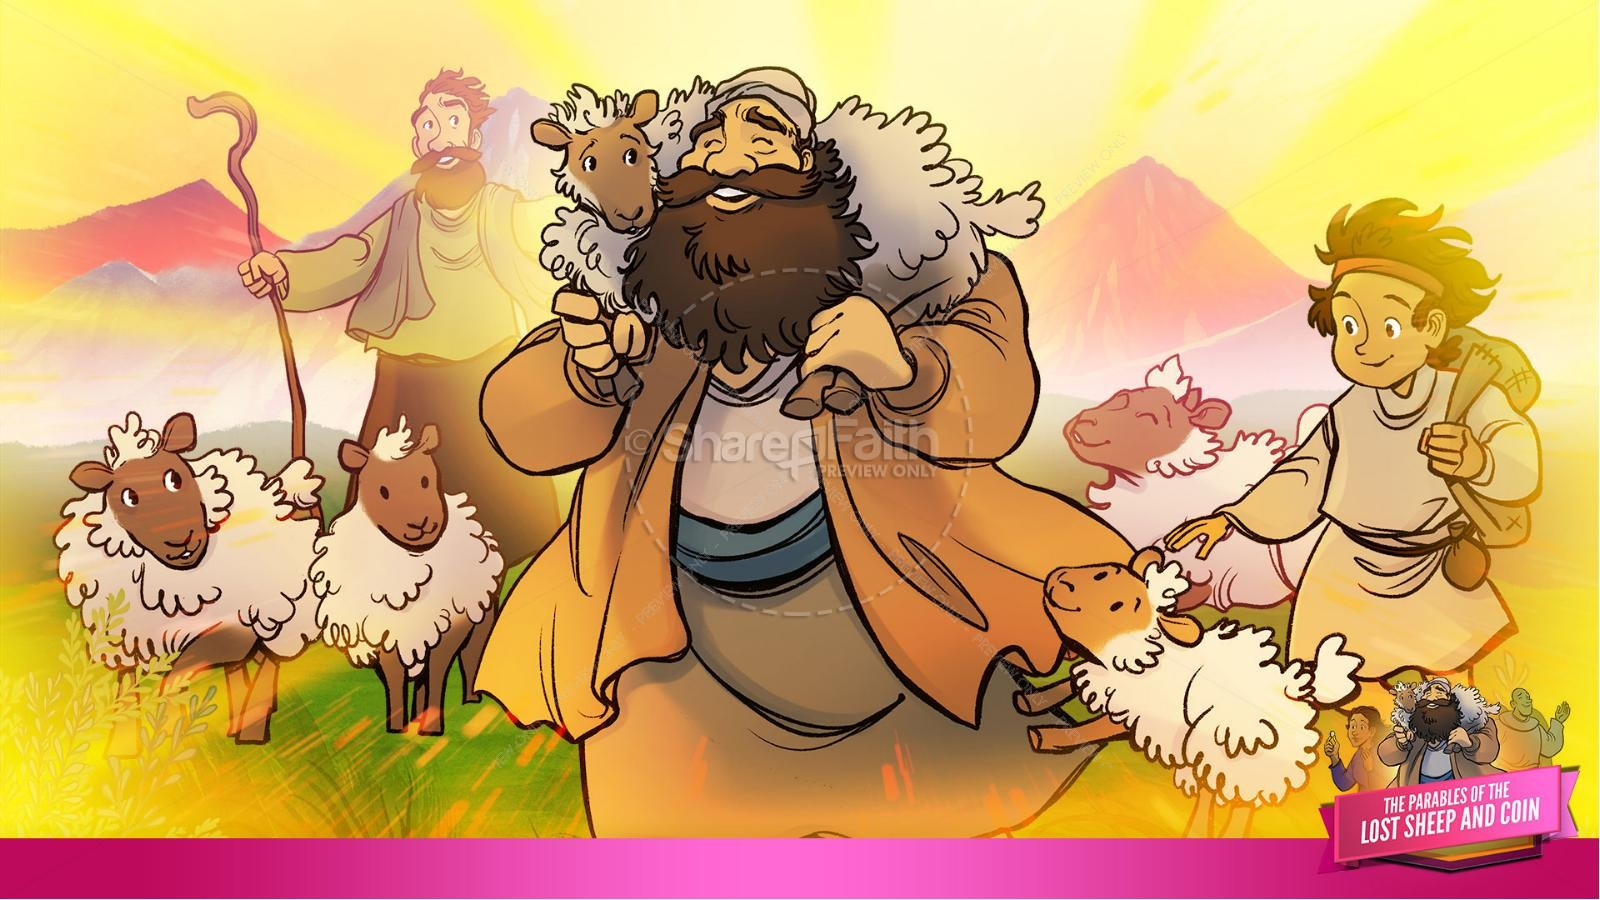 Luke 15 The Parables of the Lost Sheep and Coin Kids Bible Story | slide 18